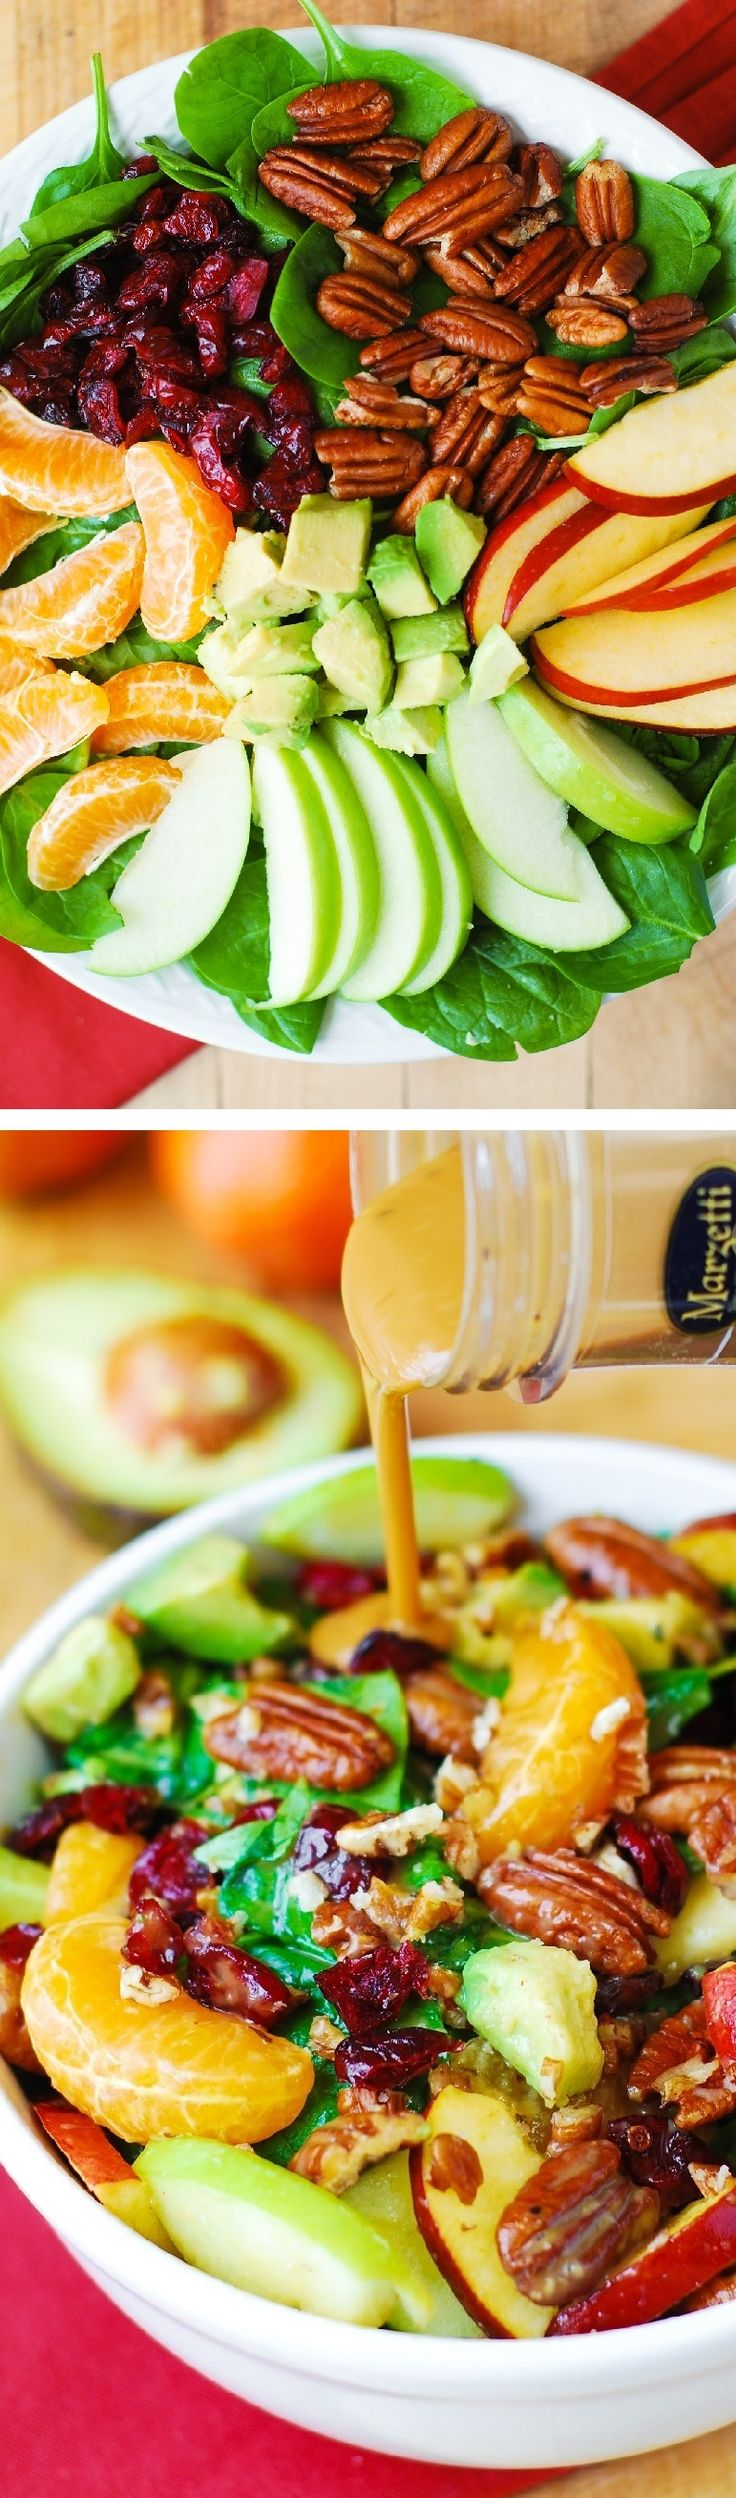 Apple Cranberry Spinach Salad: ingredients include pecans, avocados, and balsamic vinaigrette dressing, (delicious, healthy, vegetarian, gluten-free).